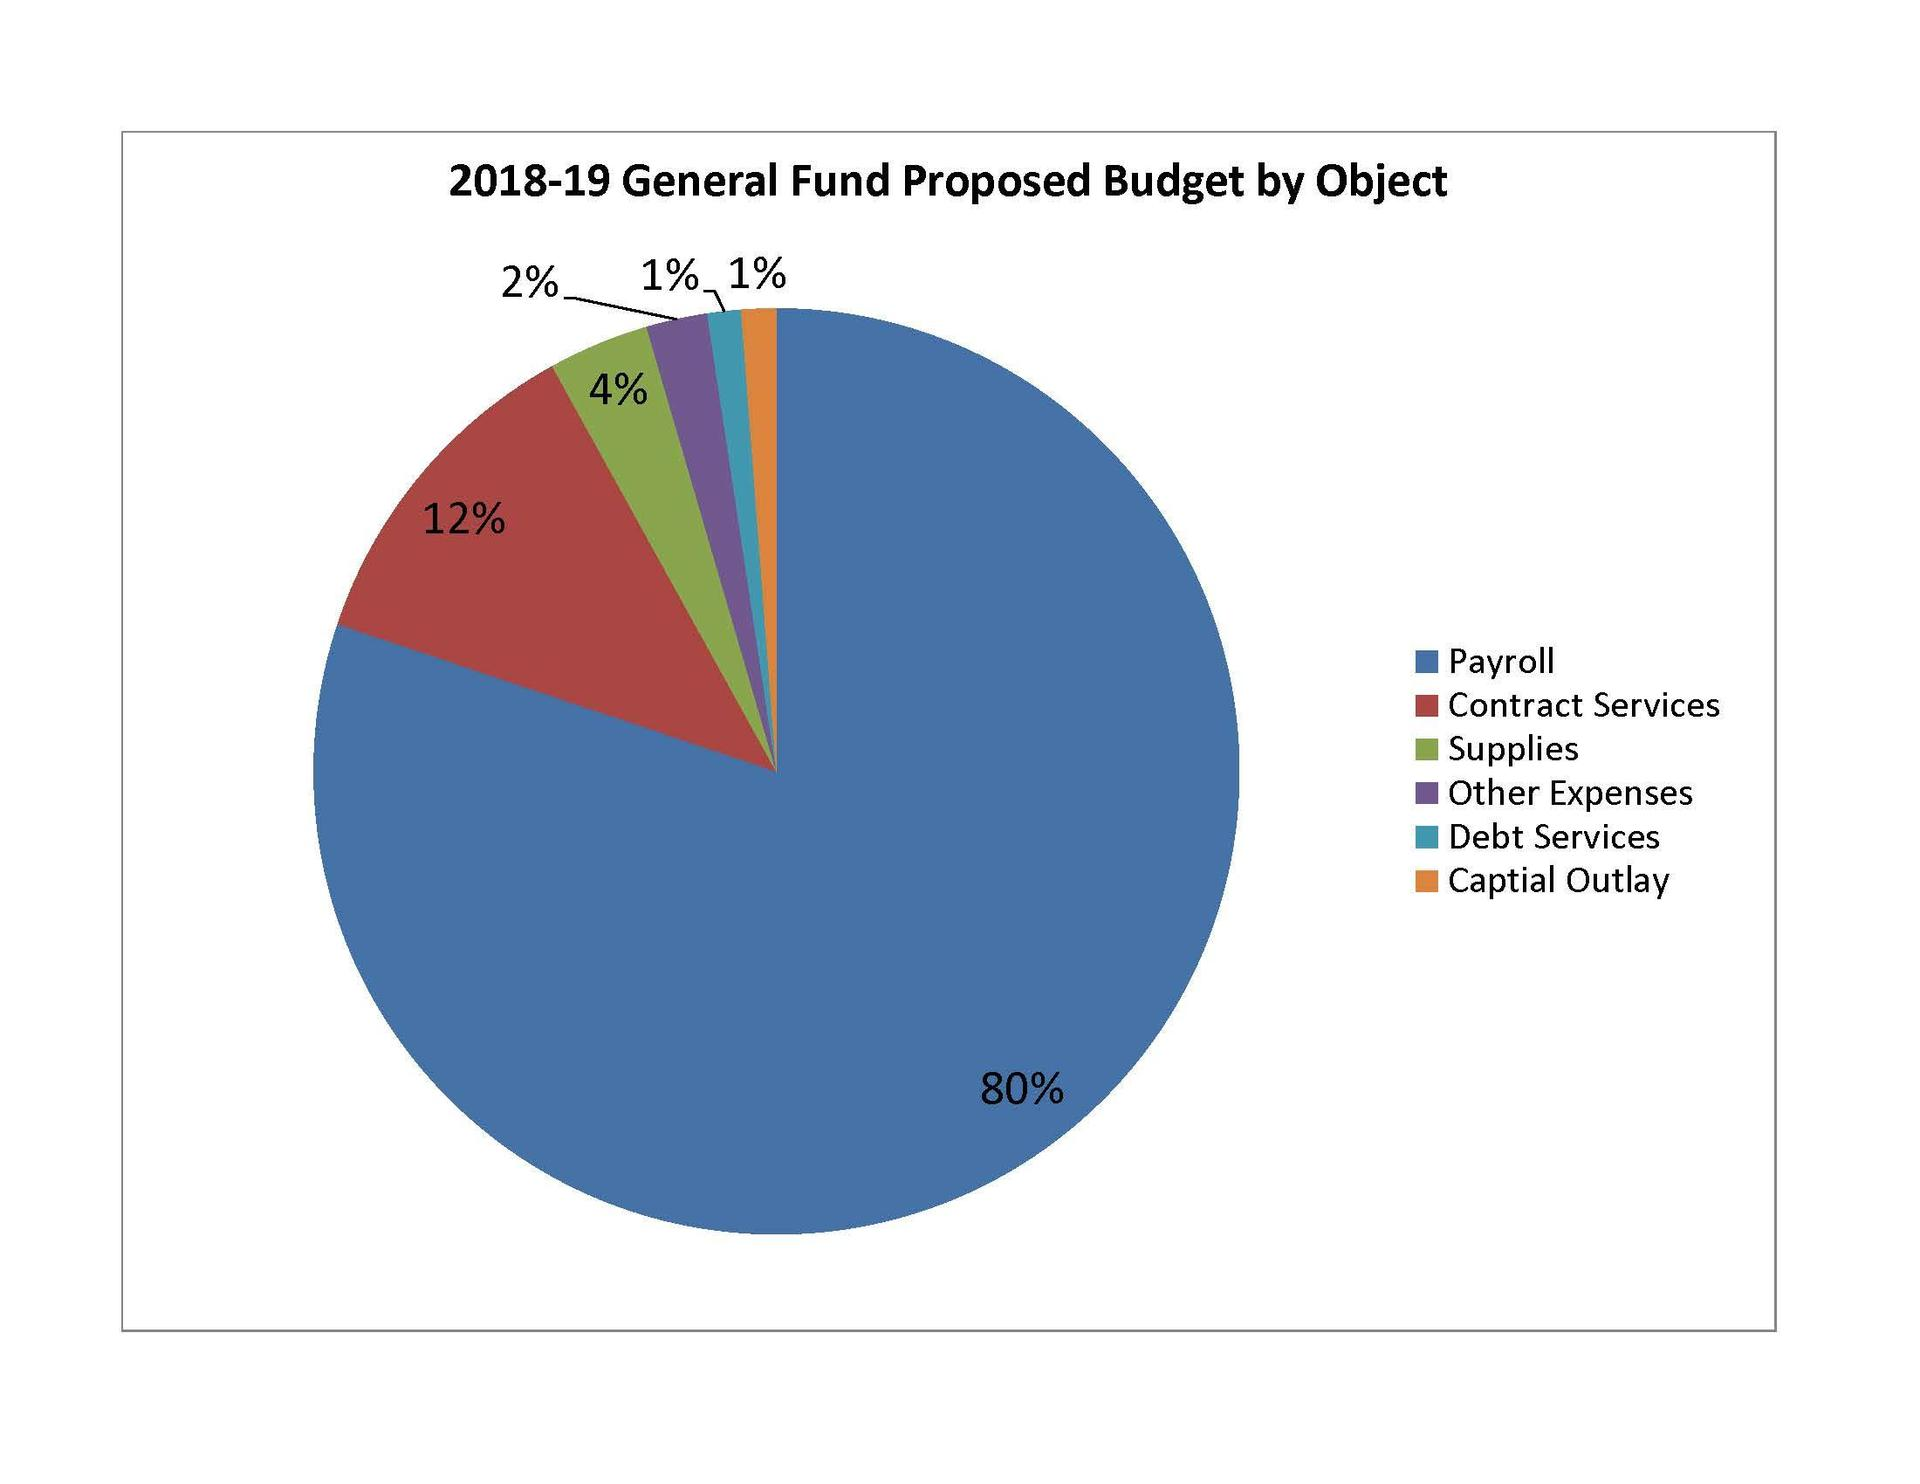 Budgeted Funds by Object